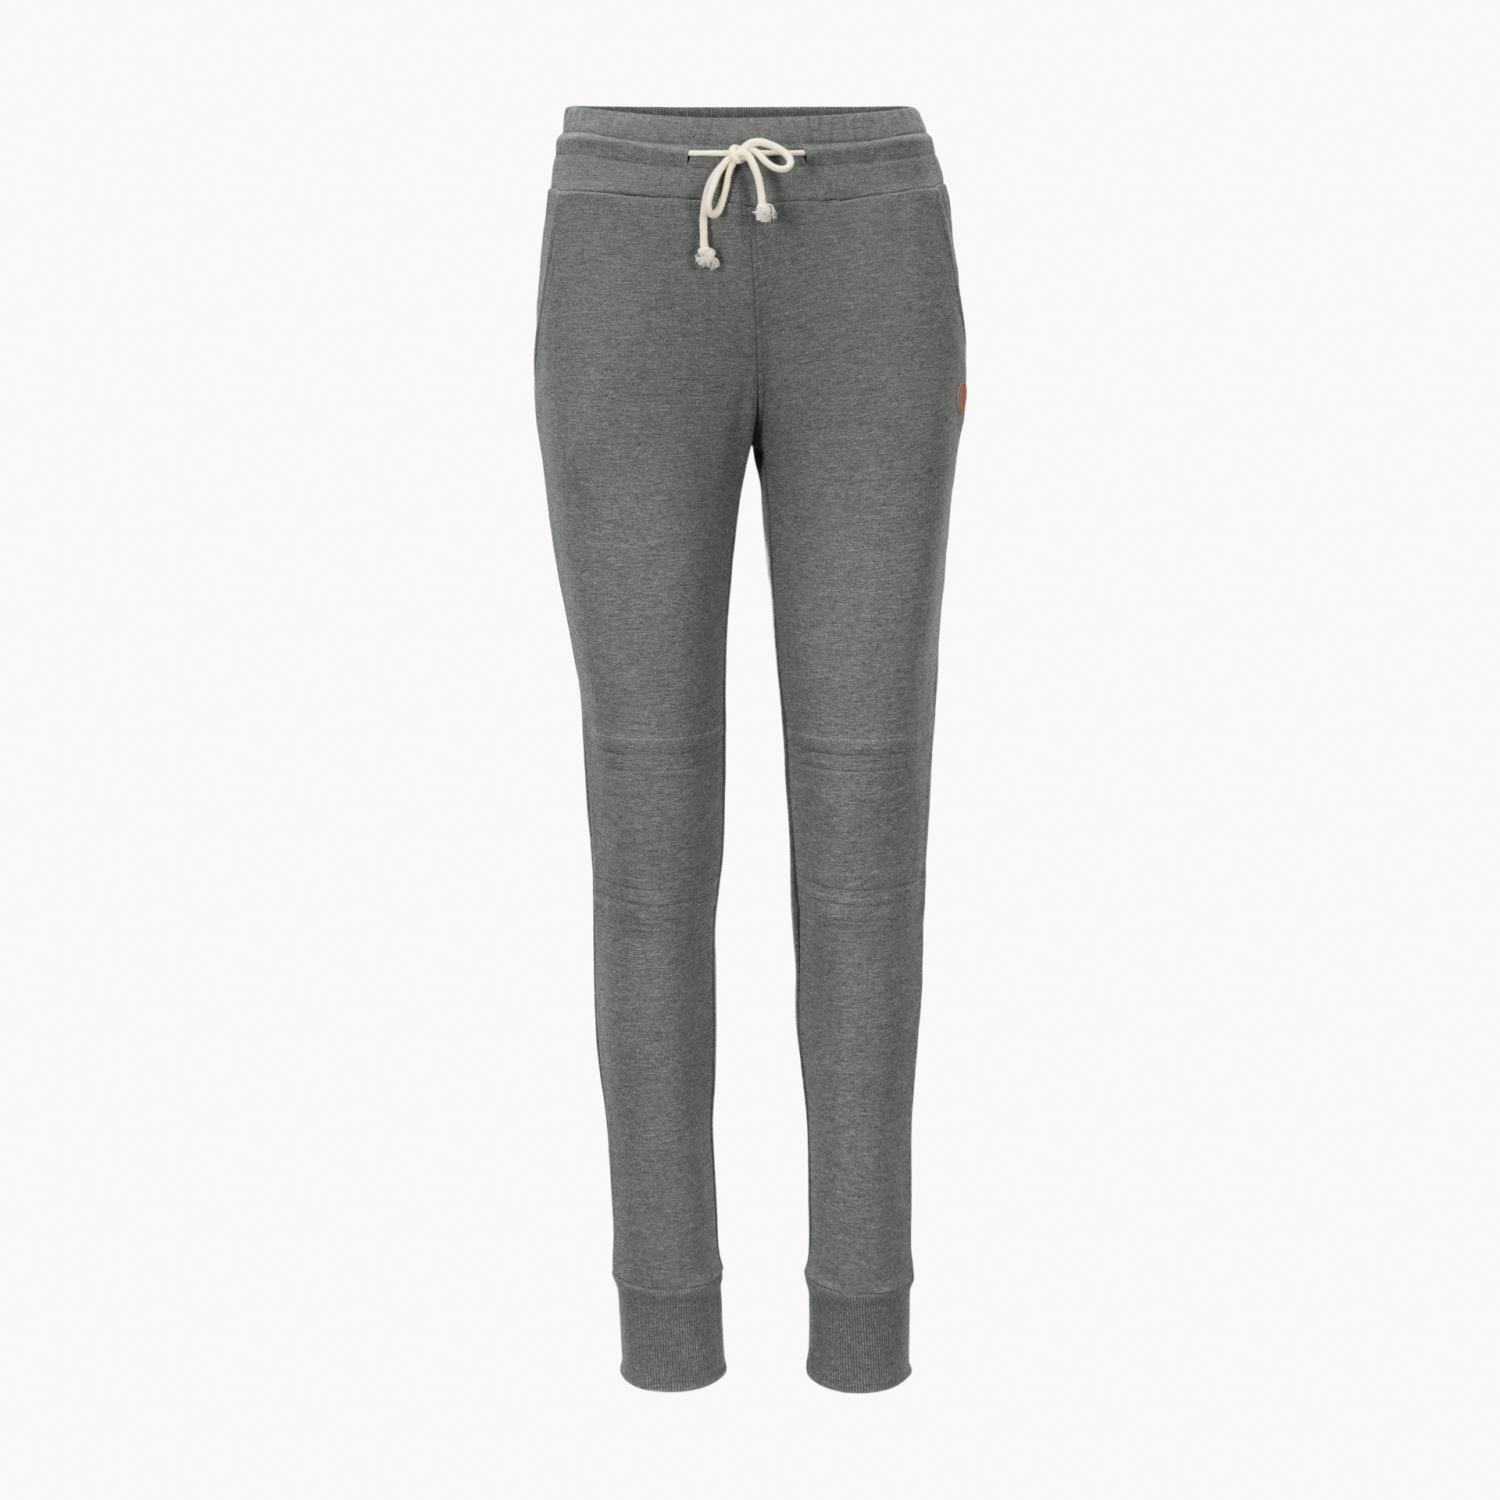 Tufte Wear  Womens Tight Sweatpants